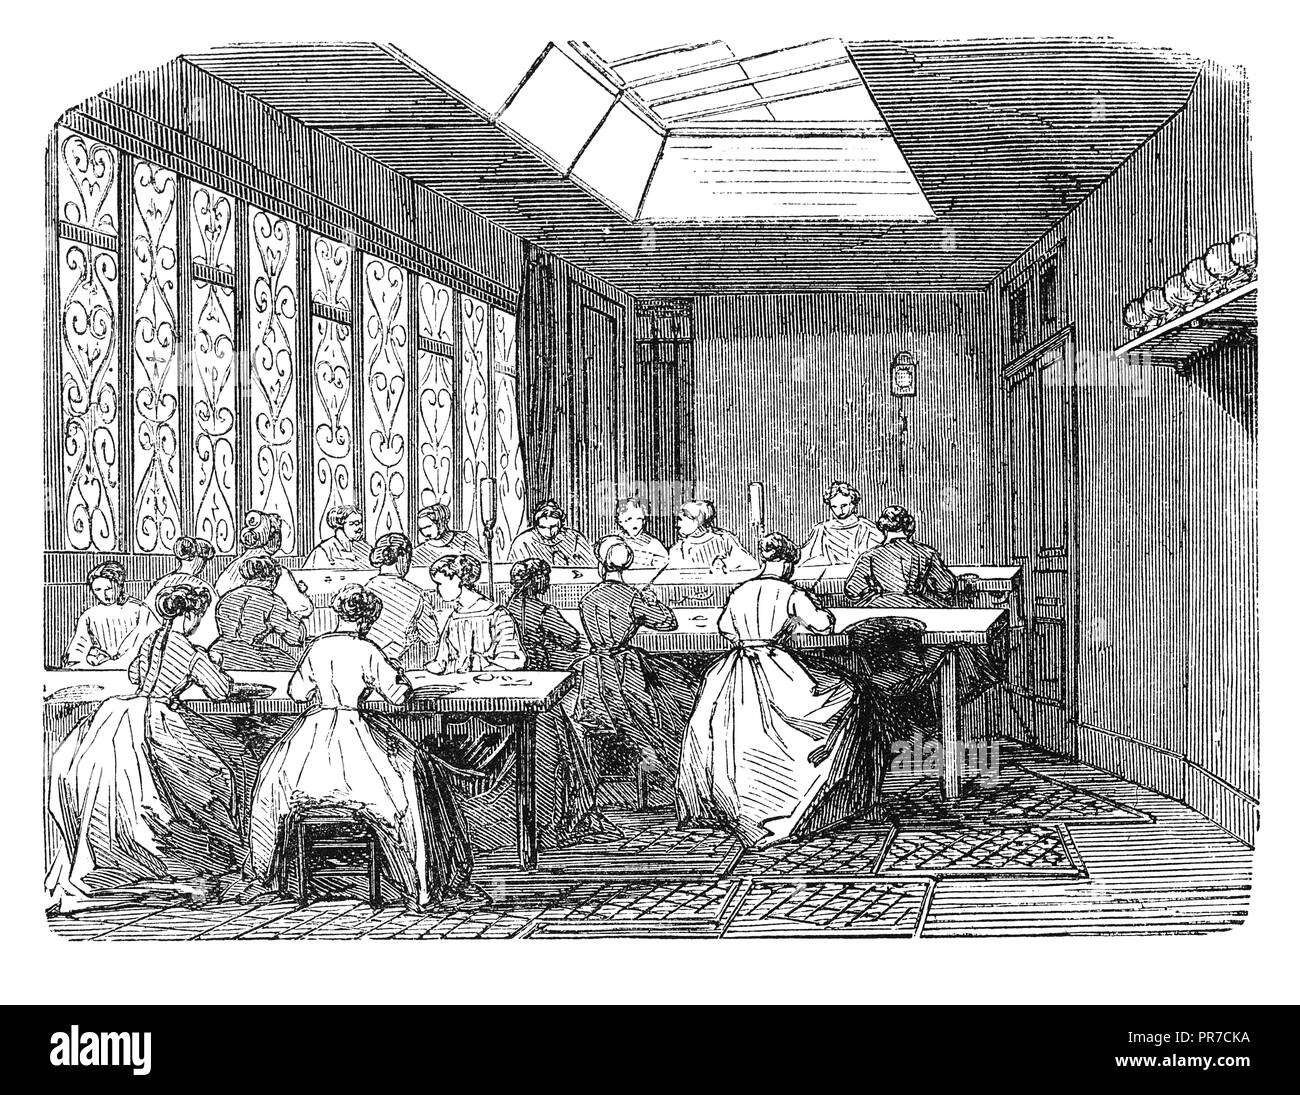 19th century illustration of the polishing workshop in jewel industry. Published in 'The Practical Magazine, an Illustrated Cyclopedia of Industrial N - Stock Image